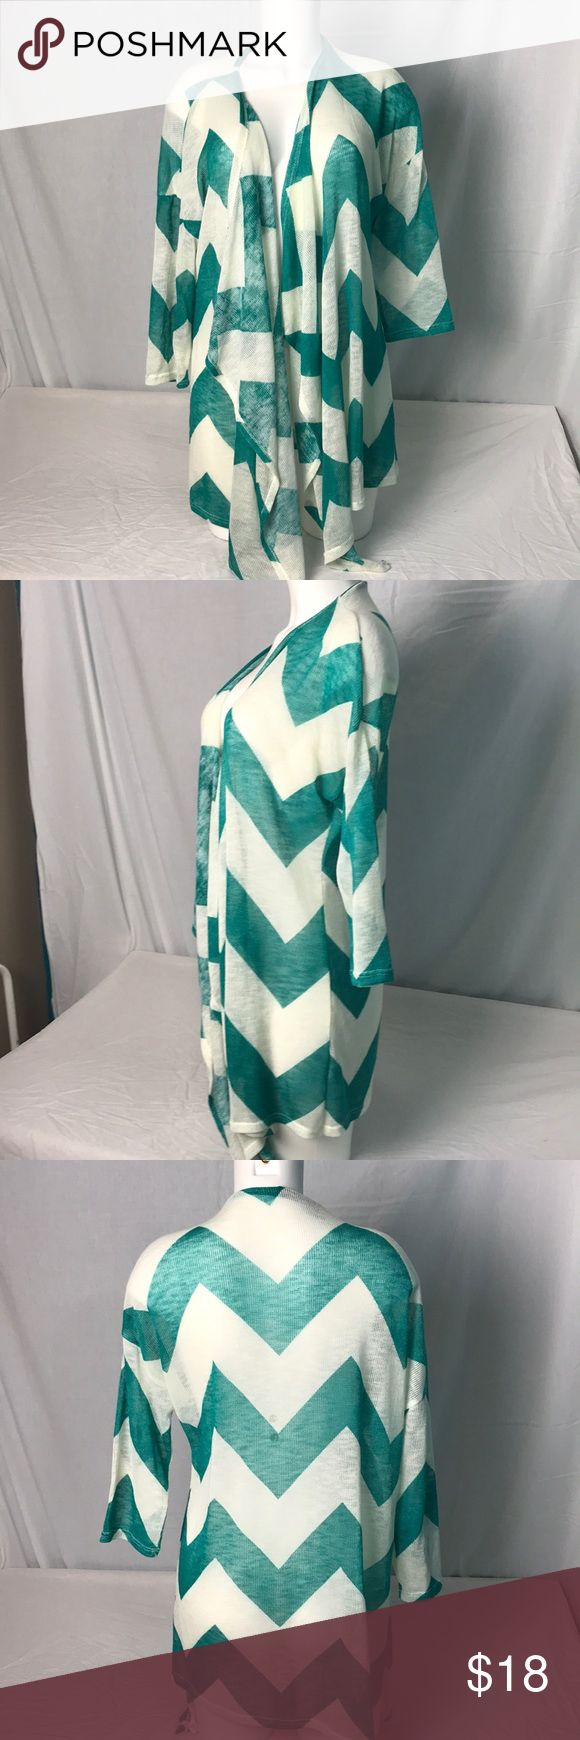 """Maurice's Plus size Chevron Print Open Cardigan Green and white chevron print open cardigan. Goes great with jeans or leggings.  Length from shoulder to hem at the longest part is 38"""". Maurice's Plus size 1.  95% polyester and 5% spandex. Light weight Maurices Sweaters Cardigans"""